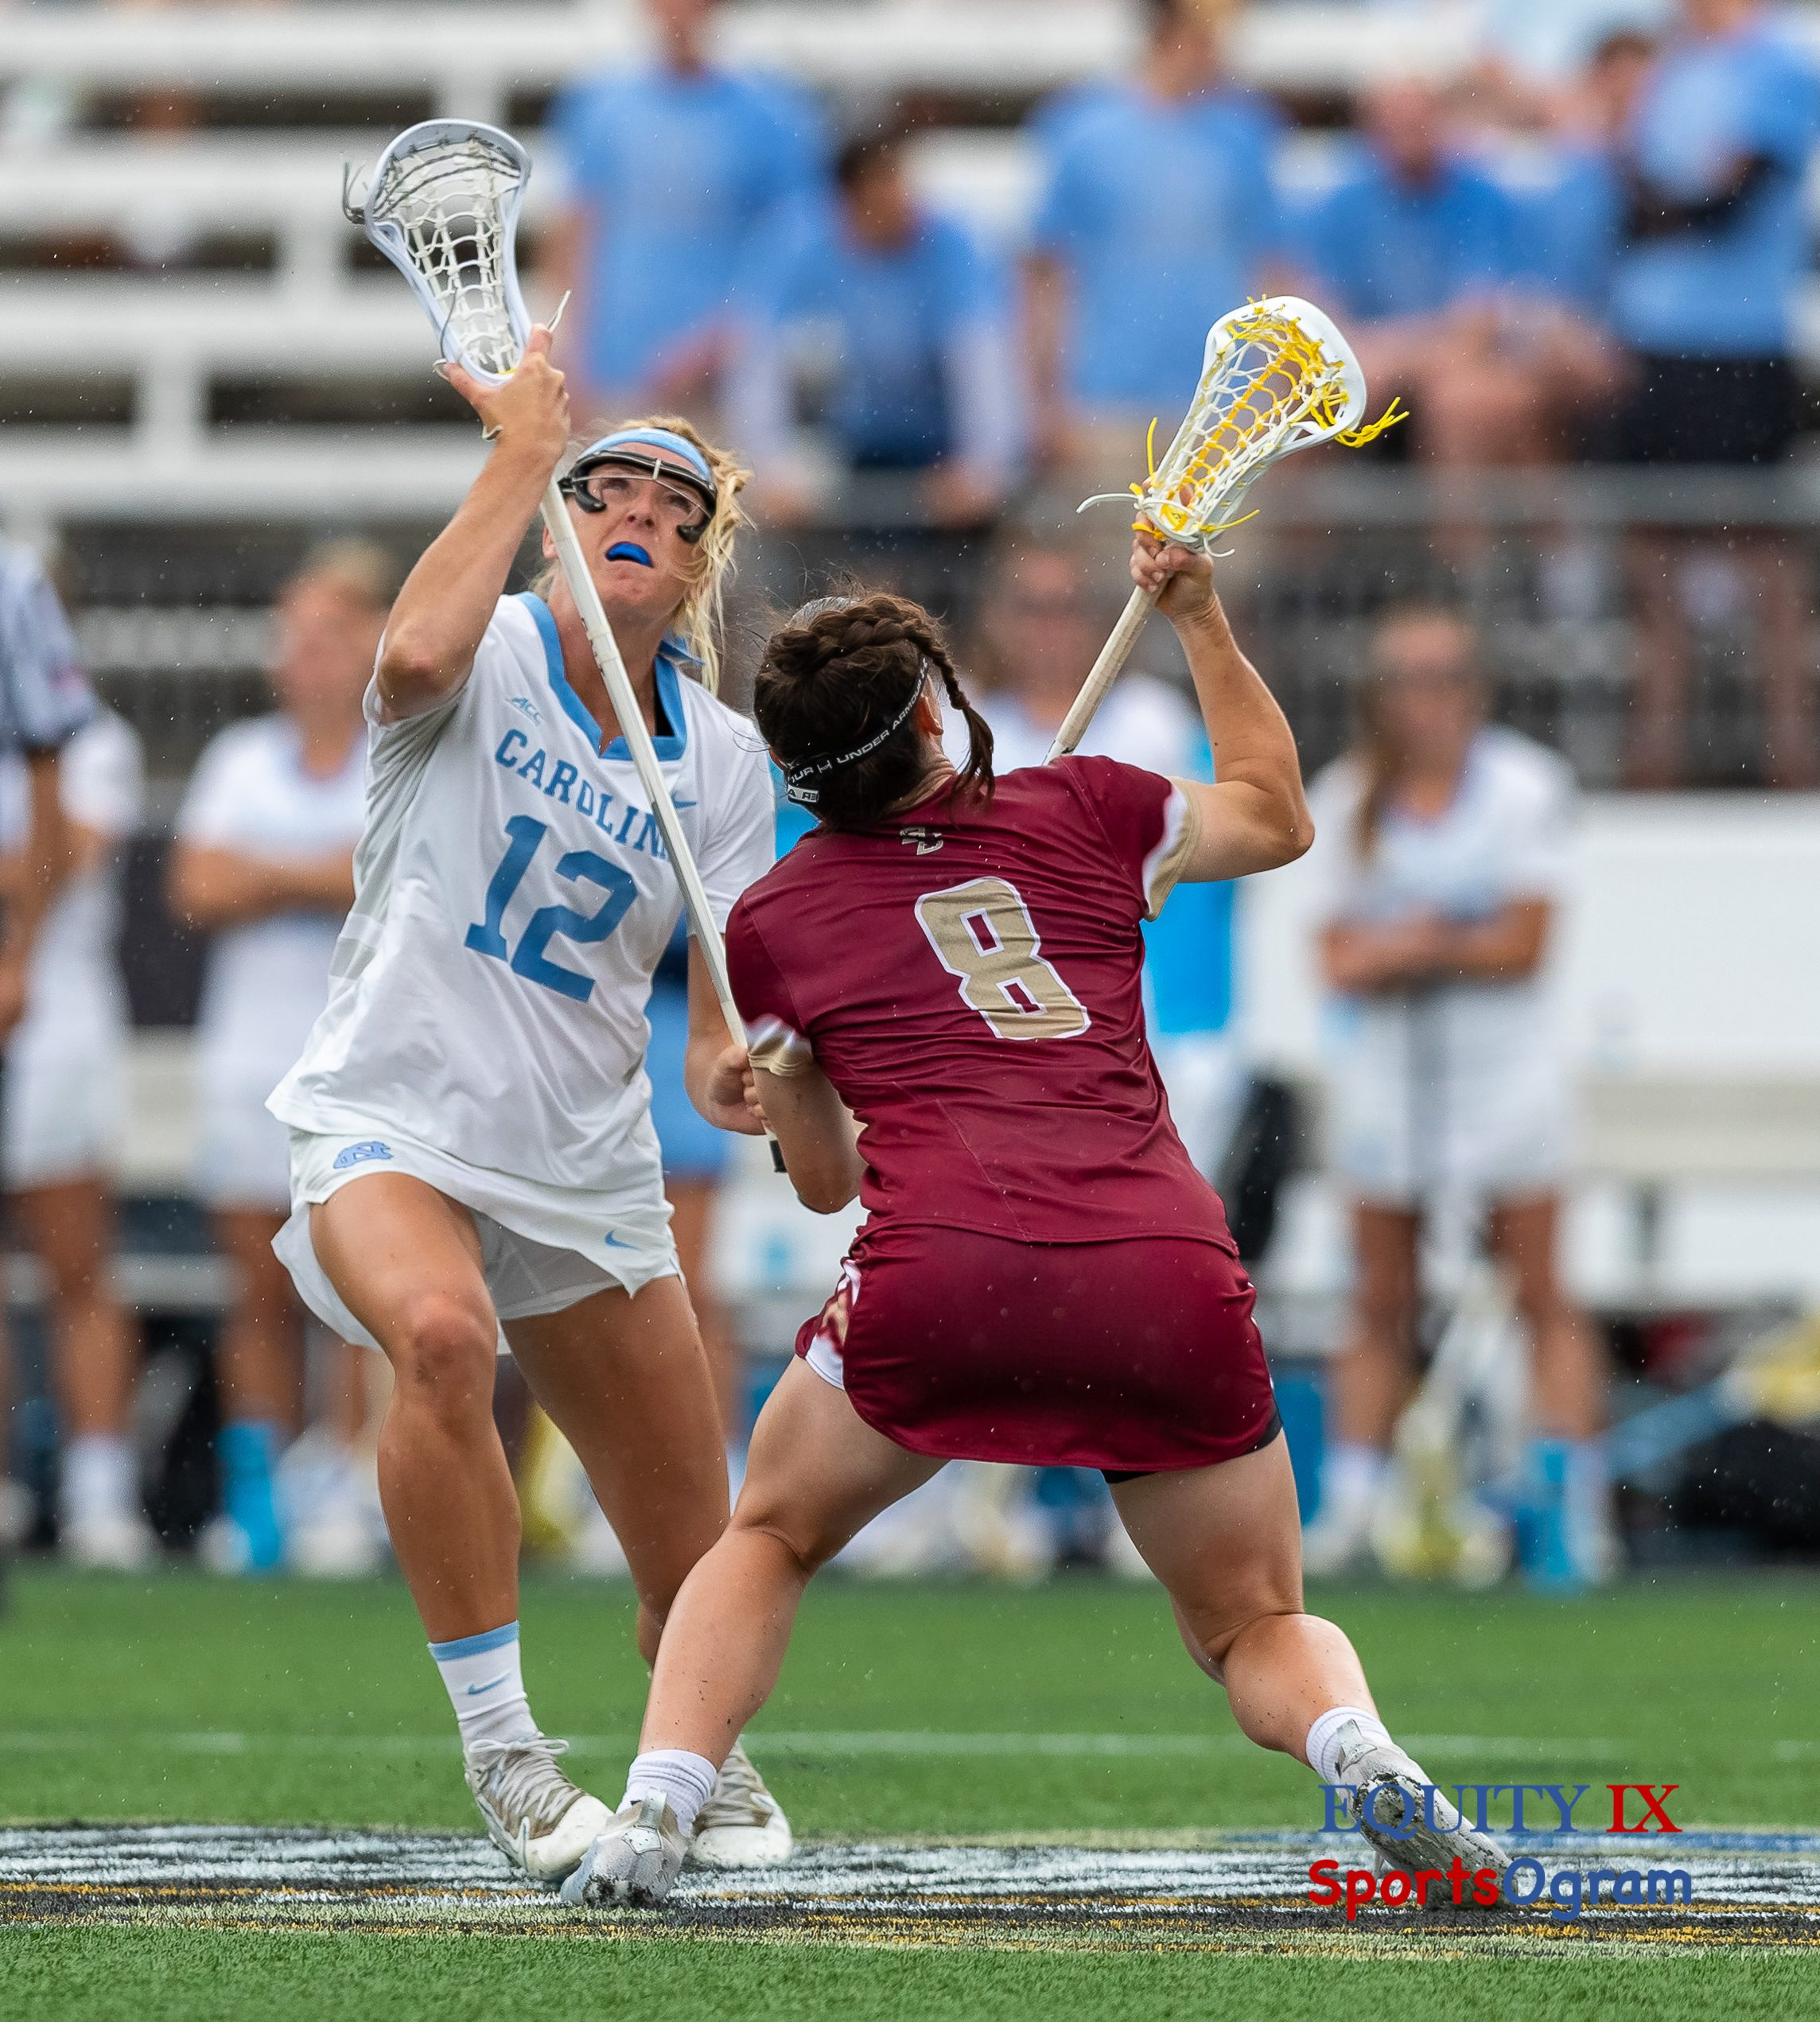 #12 Ally Mastroianni (UNC) draws against #8 Charlotte North (Boston College) both lacrosse sticks are in the air as the players look up for the ball - 2021 NCAA Women's Lacrosse Final Four © Equity IX - SportsOgram - Leigh Ernst Friestedt